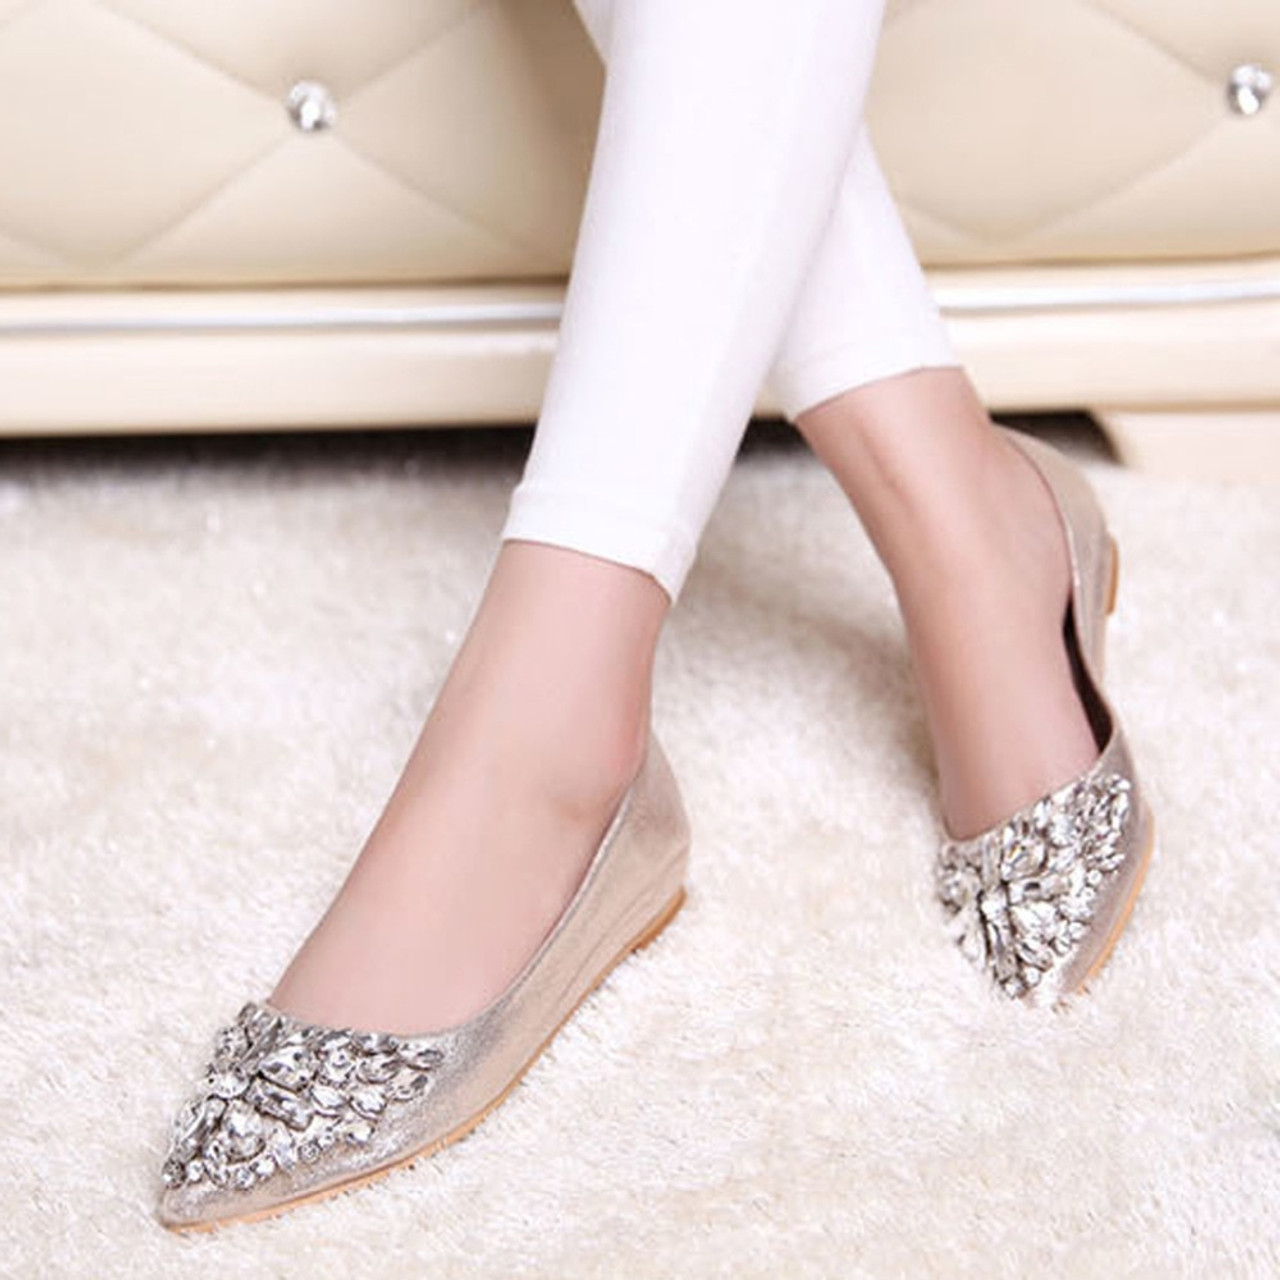 16a36ae93 ... Fashion women Ballet shoes leisure spring pointy ballerina bling  Rhinestone flats shoes princess shiny Crystal wedding ...